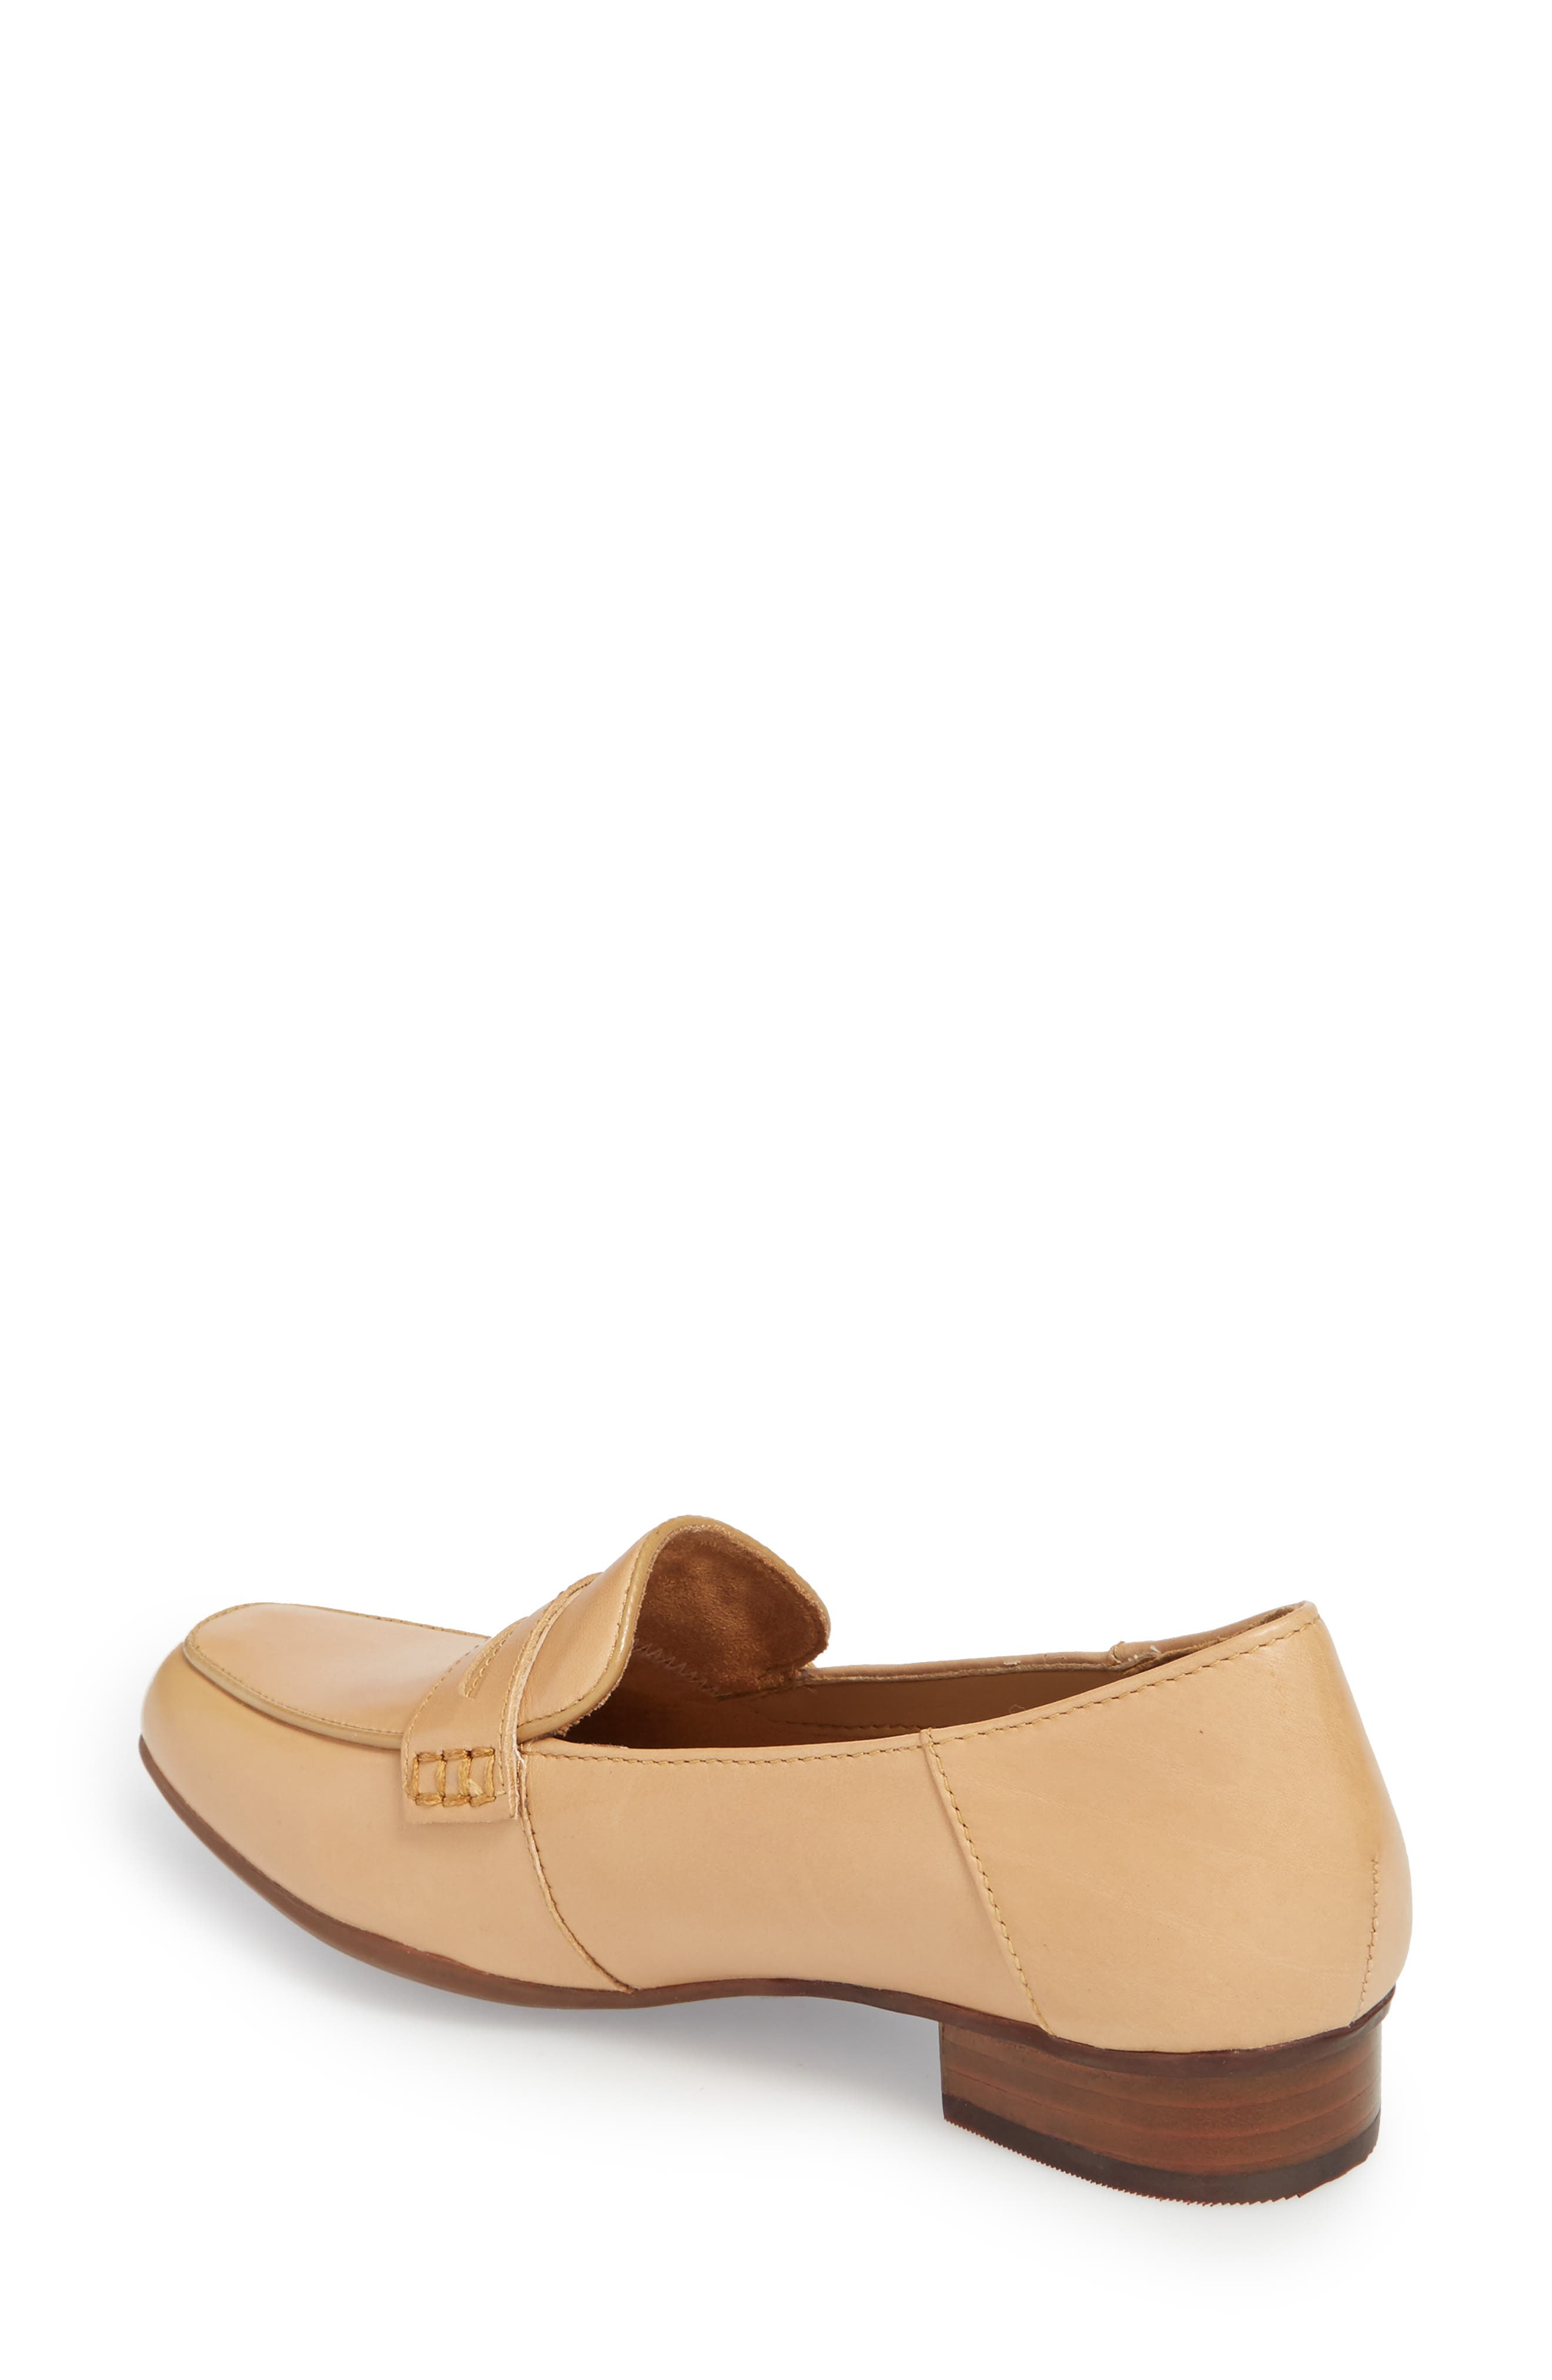 Keesha Cora Penny Loafer,                             Alternate thumbnail 2, color,                             Light Tan Leather